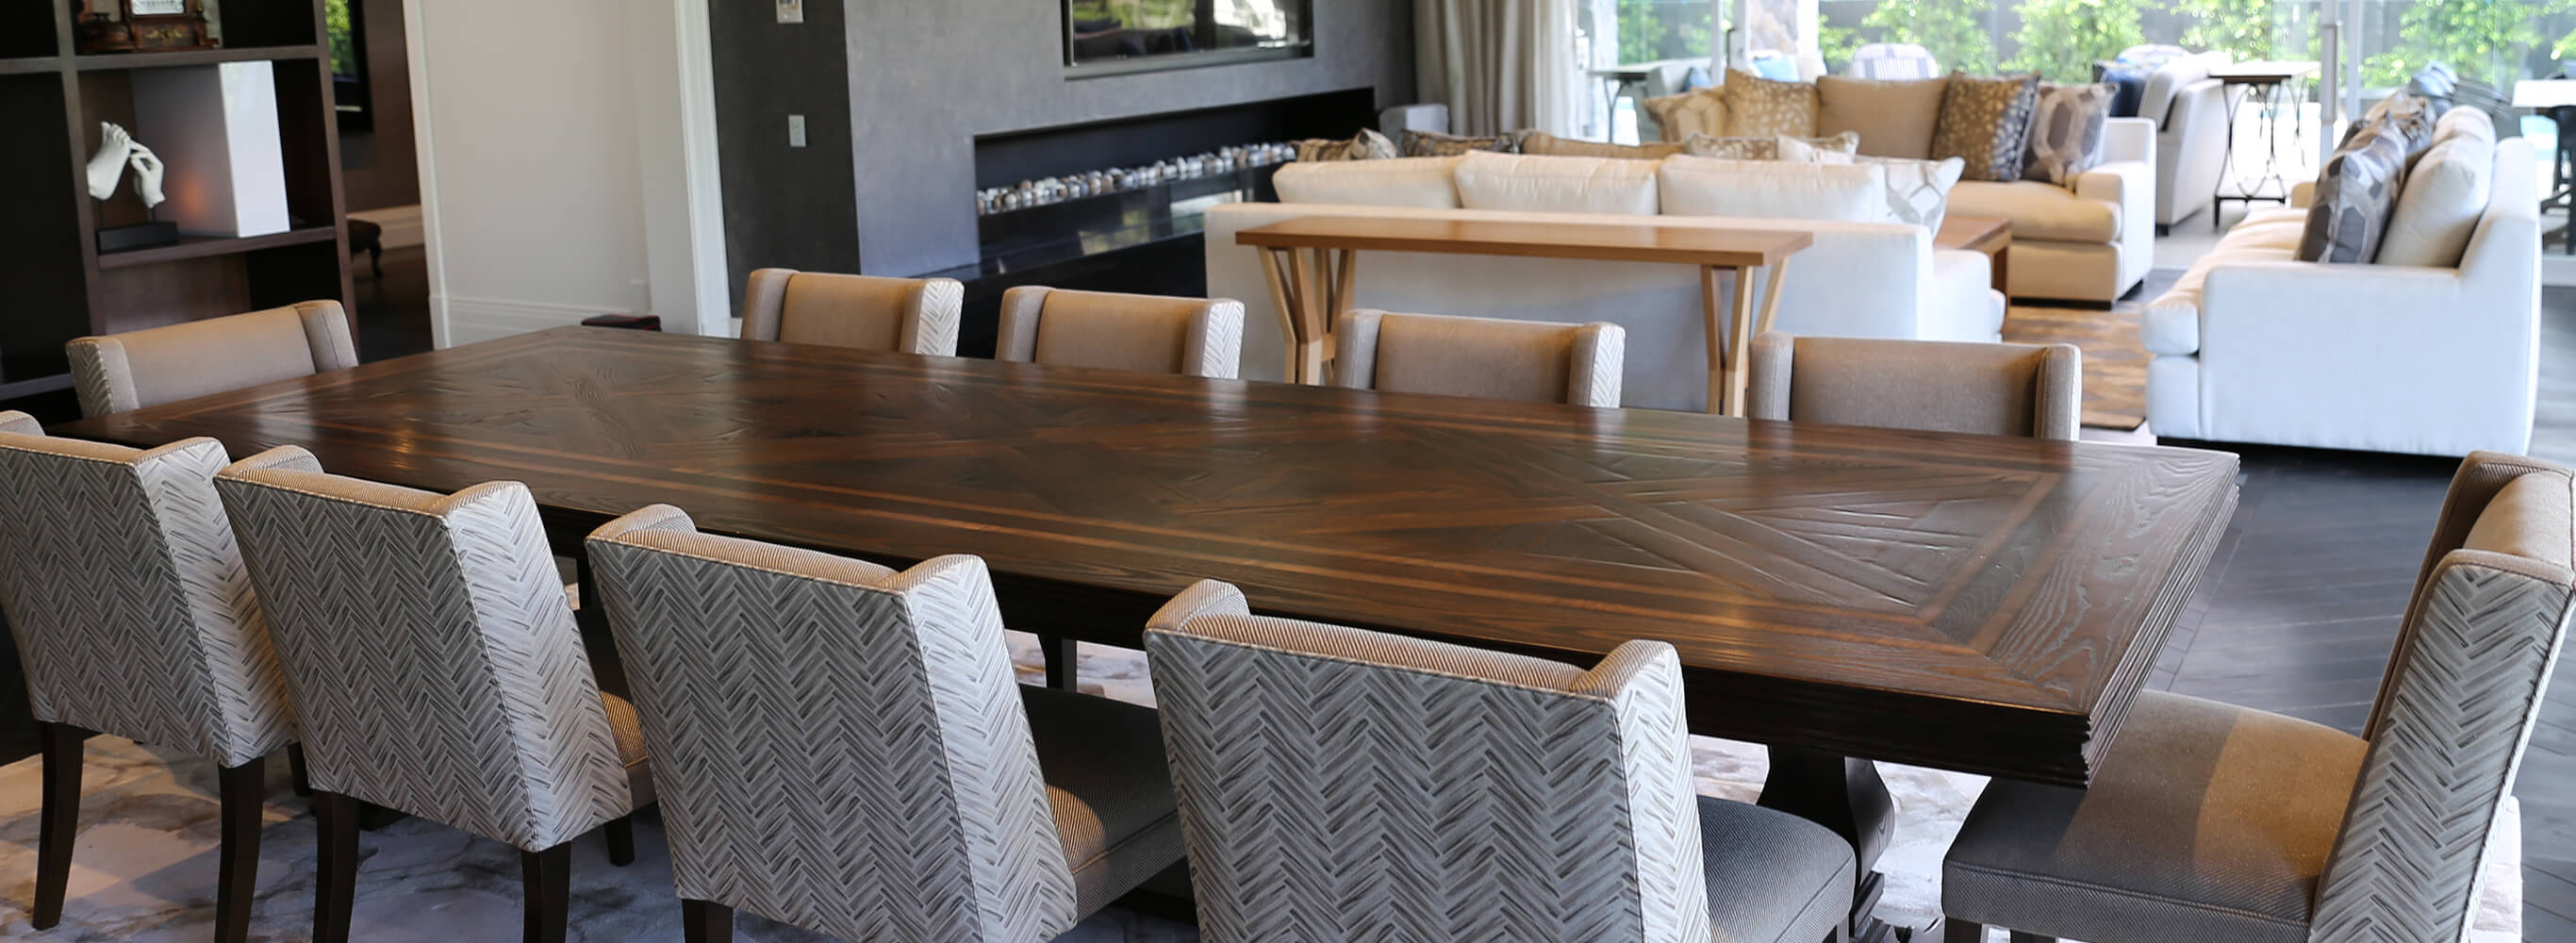 FrenchTables_Rectangle_Dining_Table_banner